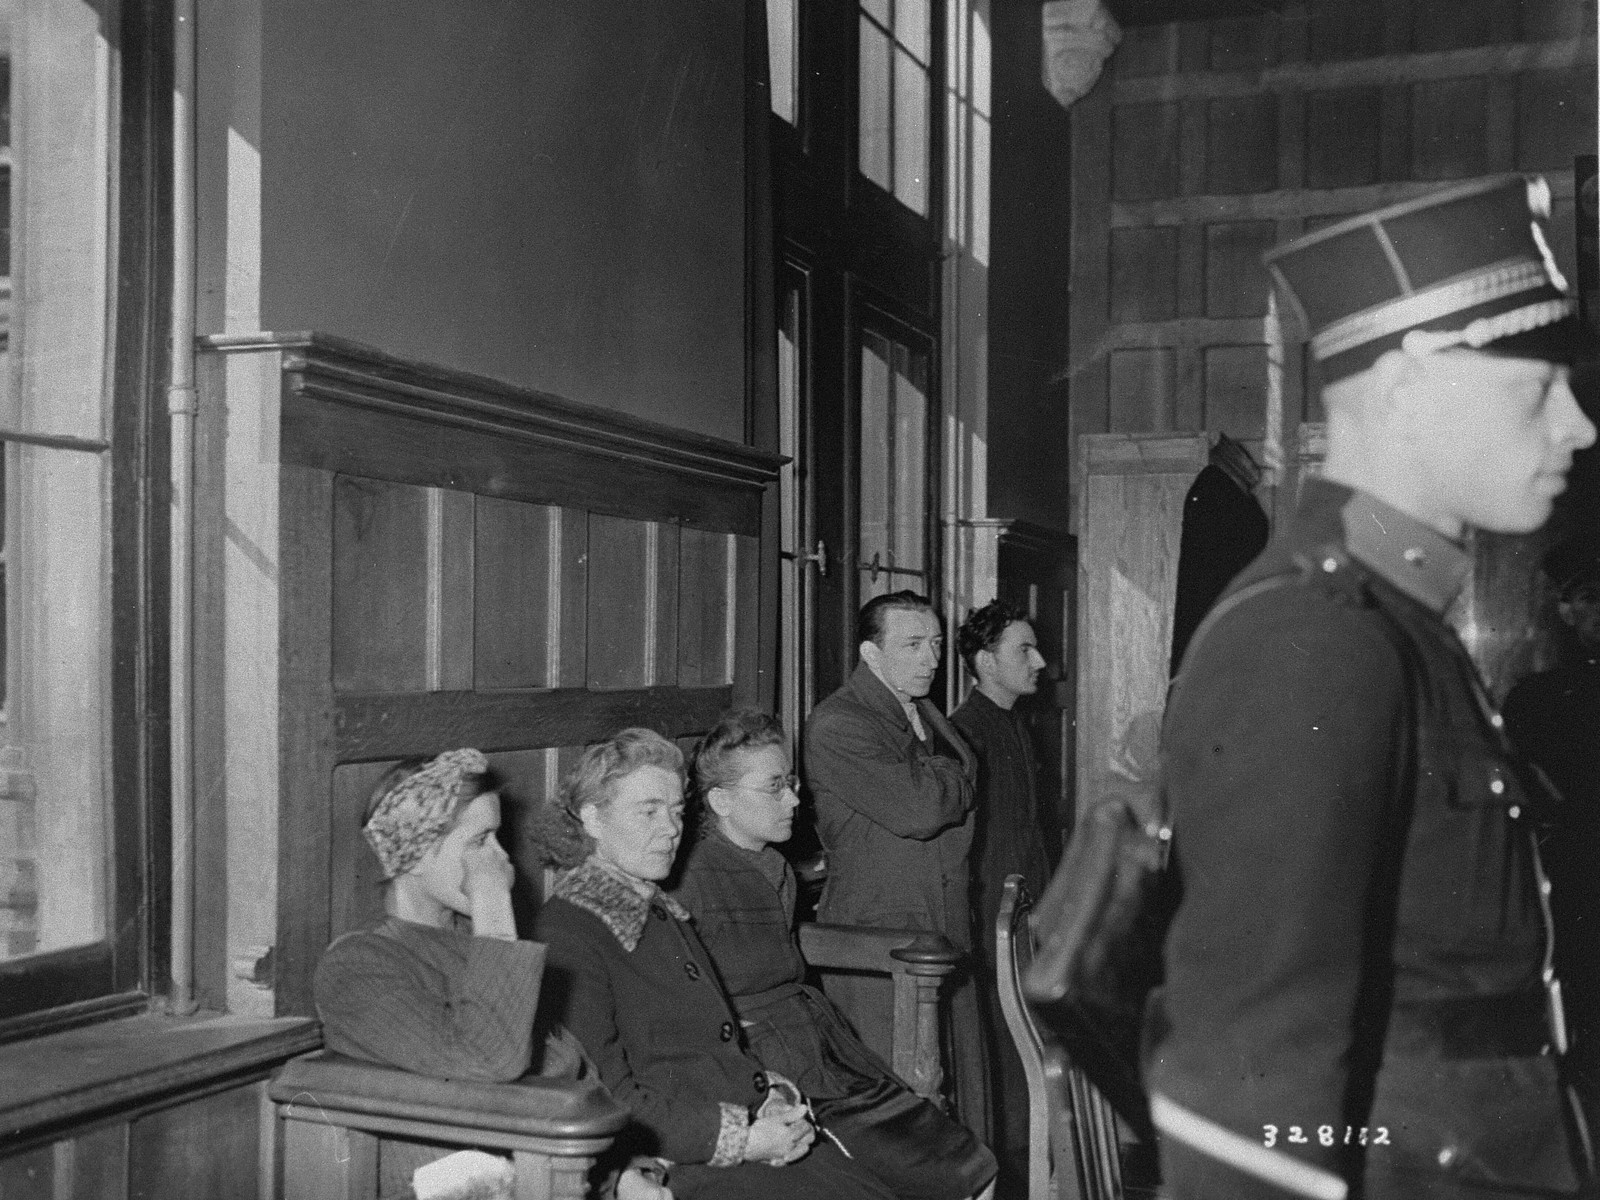 Belgian women accused of  collaborating with the Germans wait in the Liege Palace of Justice for a court to decide their fate.